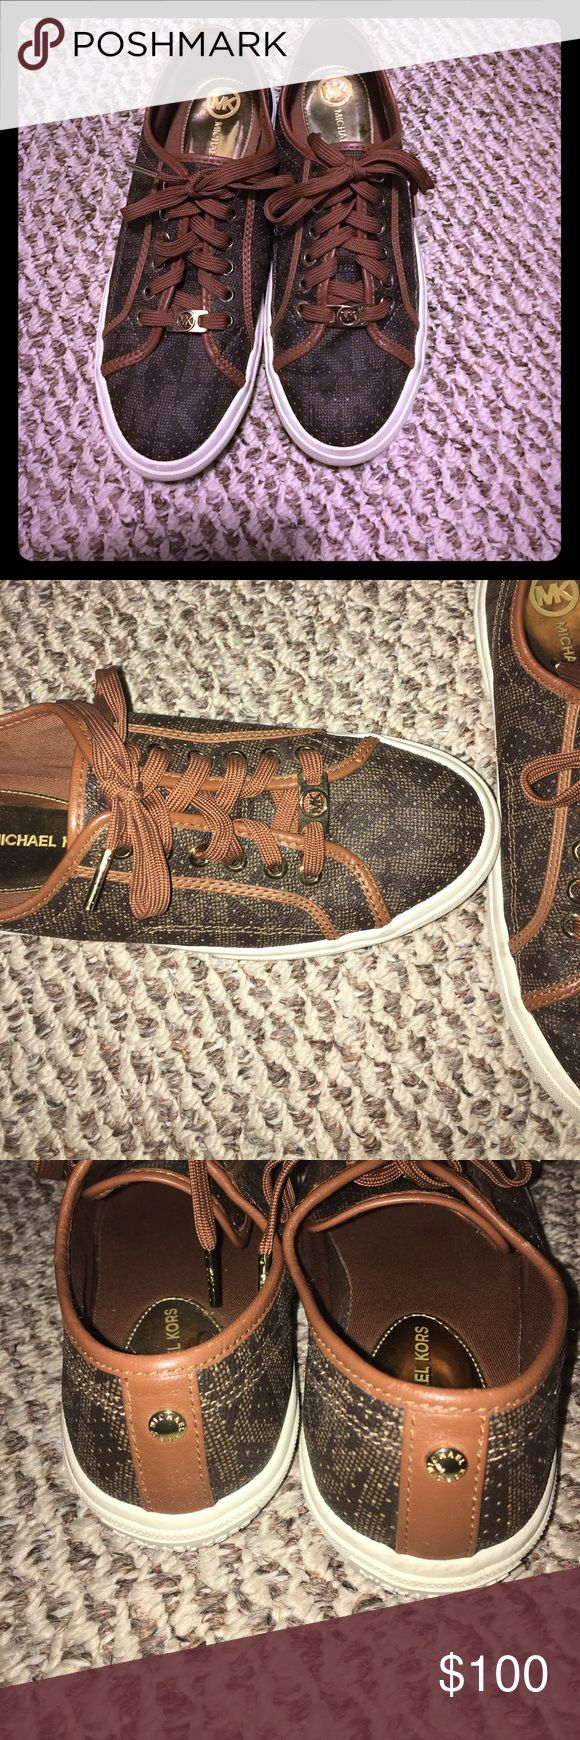 Michael Kors brown leather sneakers Michael Kors brown leather sneakers! Super cute for the summer! Only wore twice! Make a offer! MICHAEL Michael Kors Shoes Sneakers